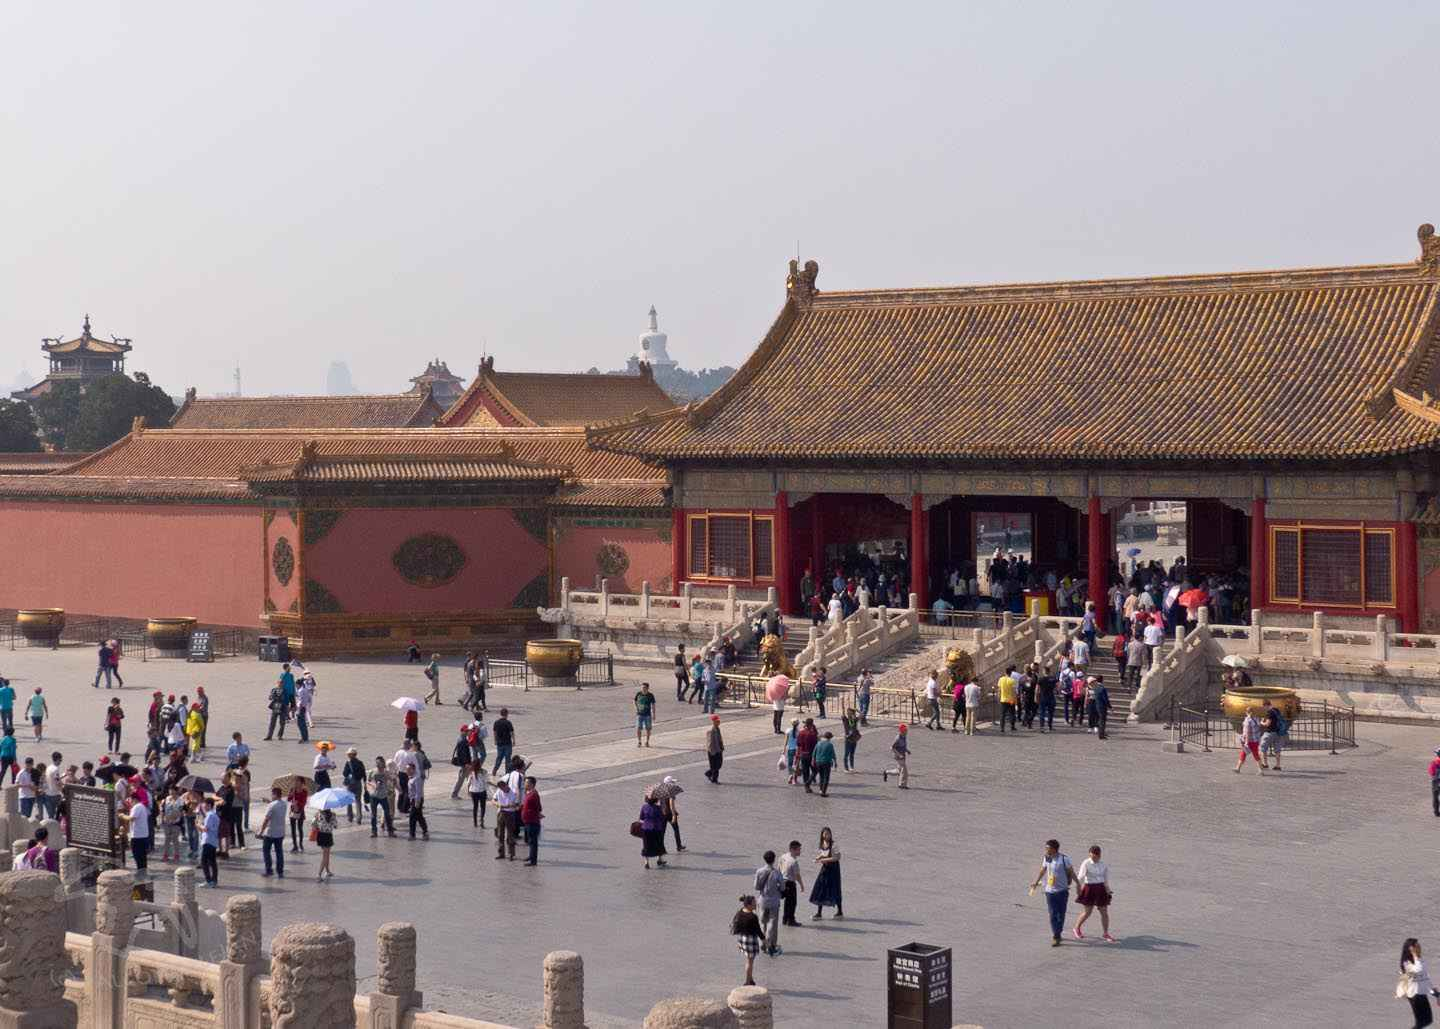 How to spend a day off from business travel in China, what can you fit in to one day in Beijing? Ideas to visit the sights, attractions and experiences with tips to take better photographs. Visit the Forbidden City. You may leave the city with a wish to come back for a proper holiday. Image description: The Forbidden City